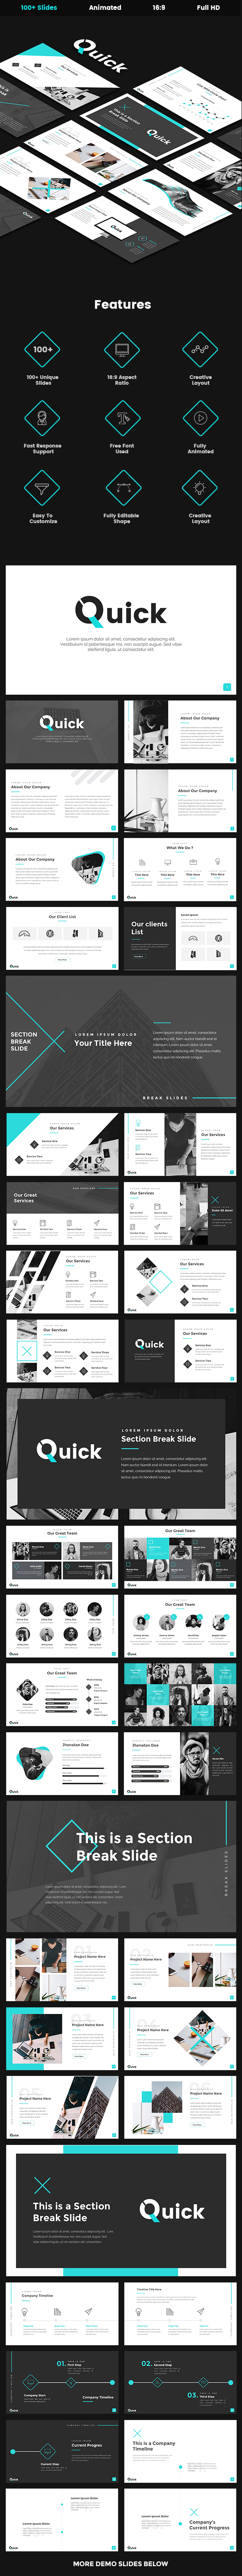 Quick - Creative Keynote Template - Creative Keynote Templates